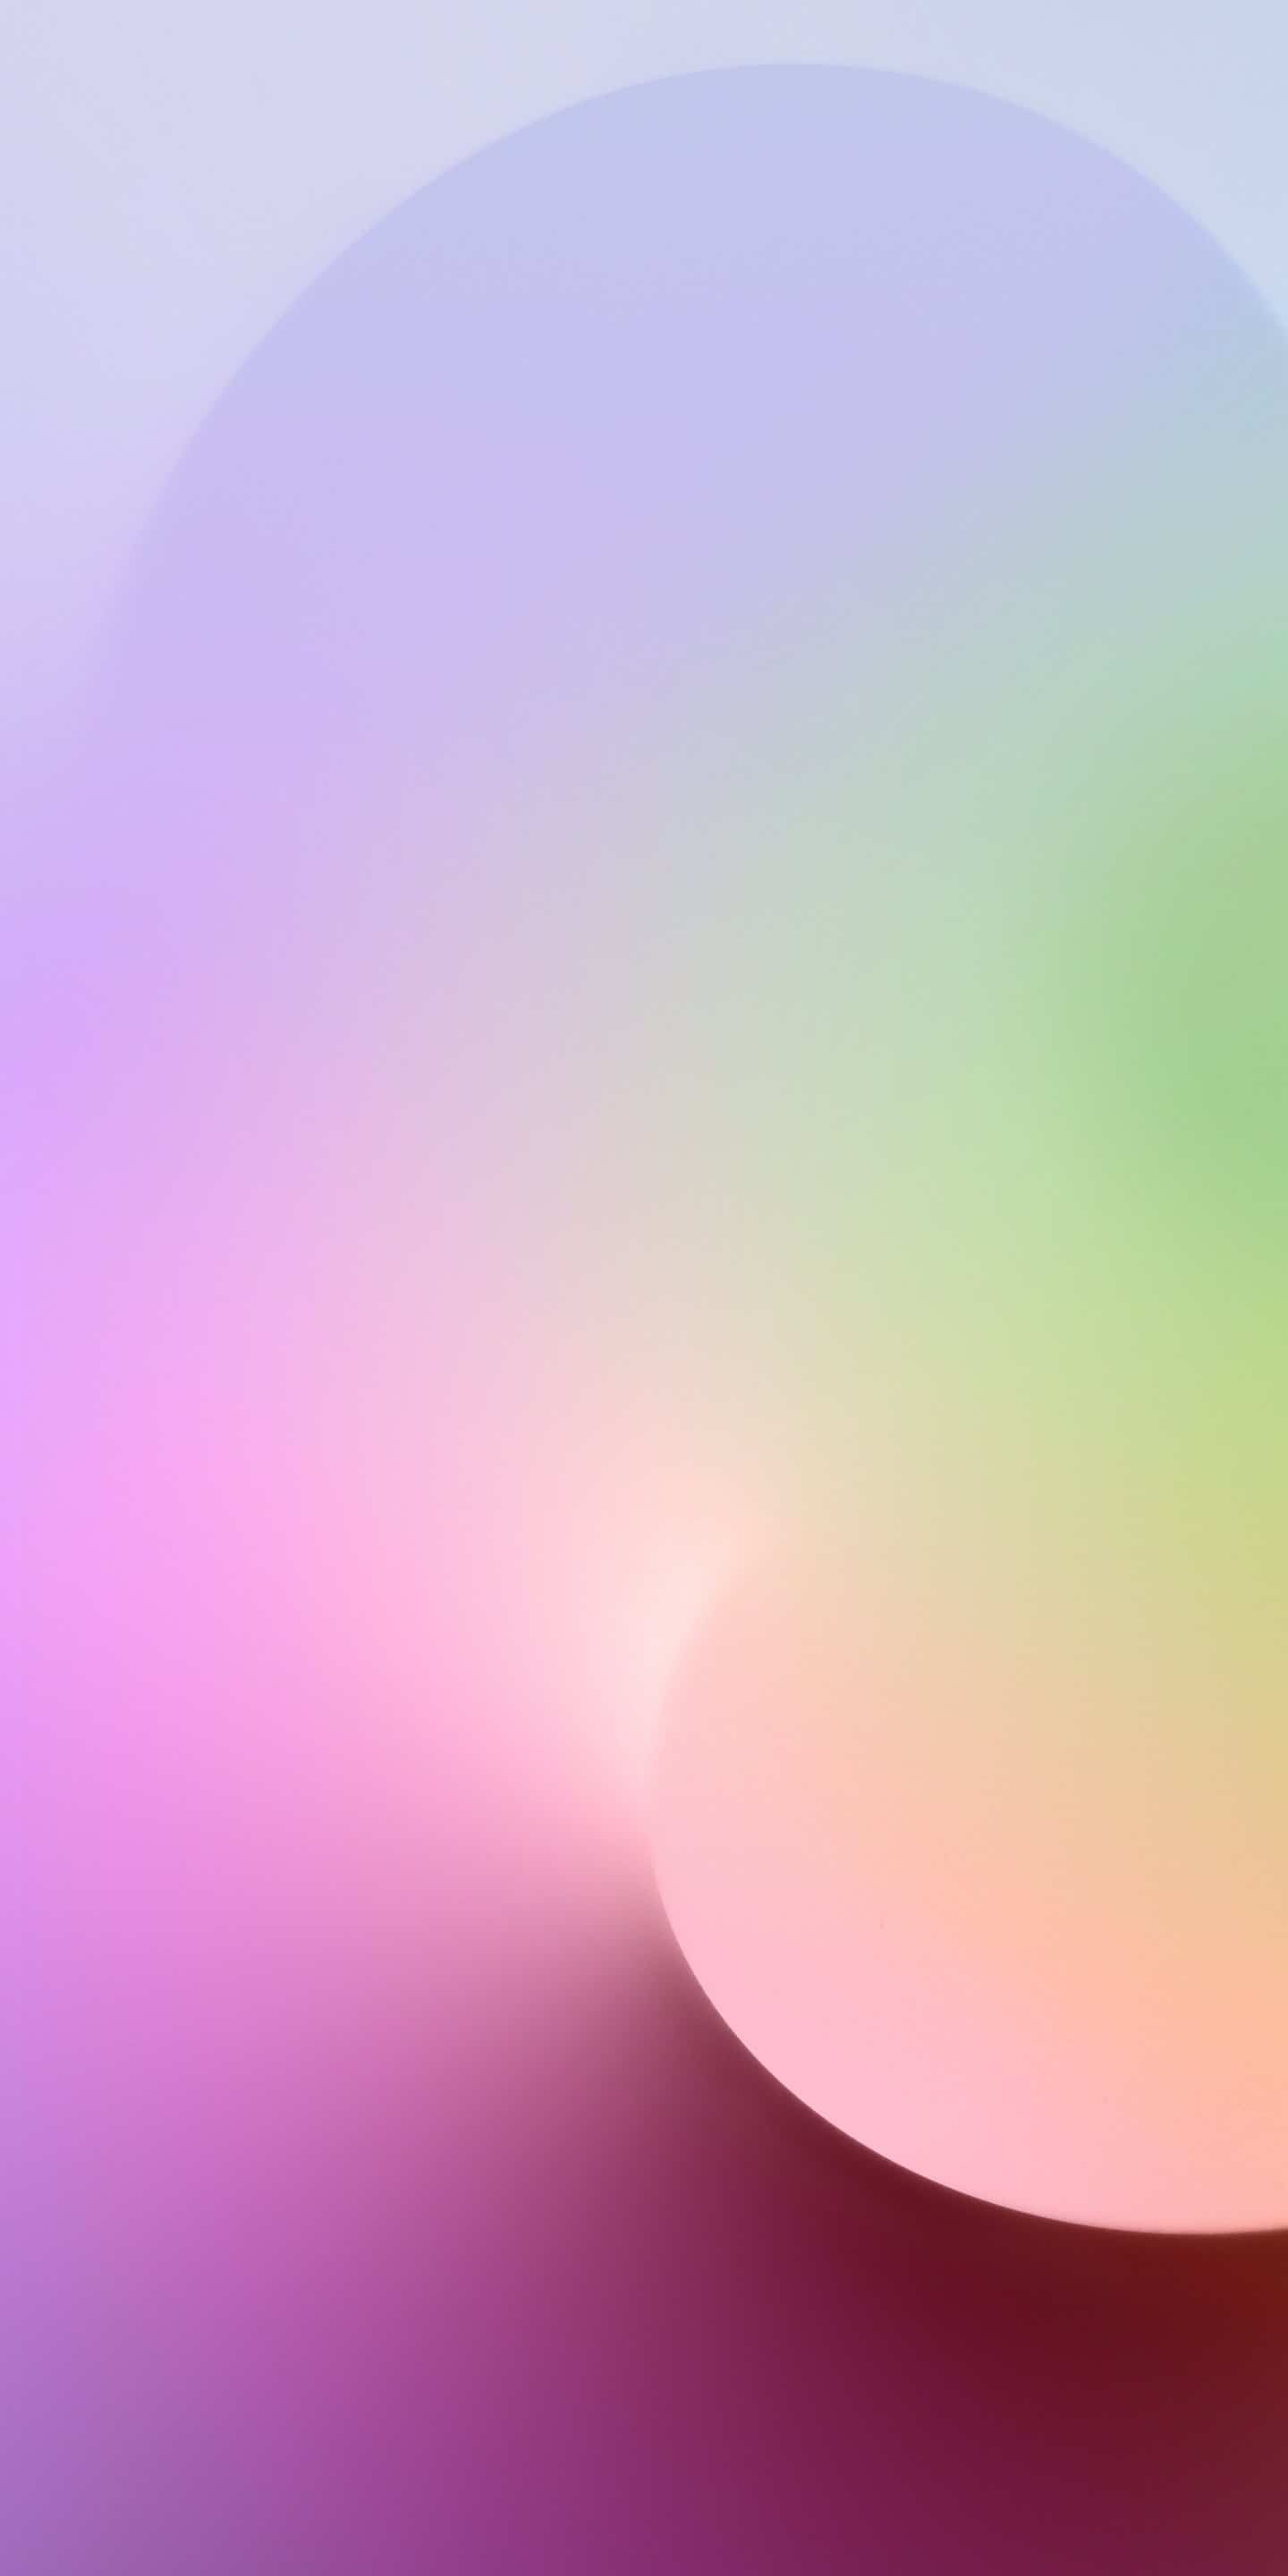 LG V30 stock wallpapers 14 • Download LG V30 Stock Wallpapers [22 Wallpapers]